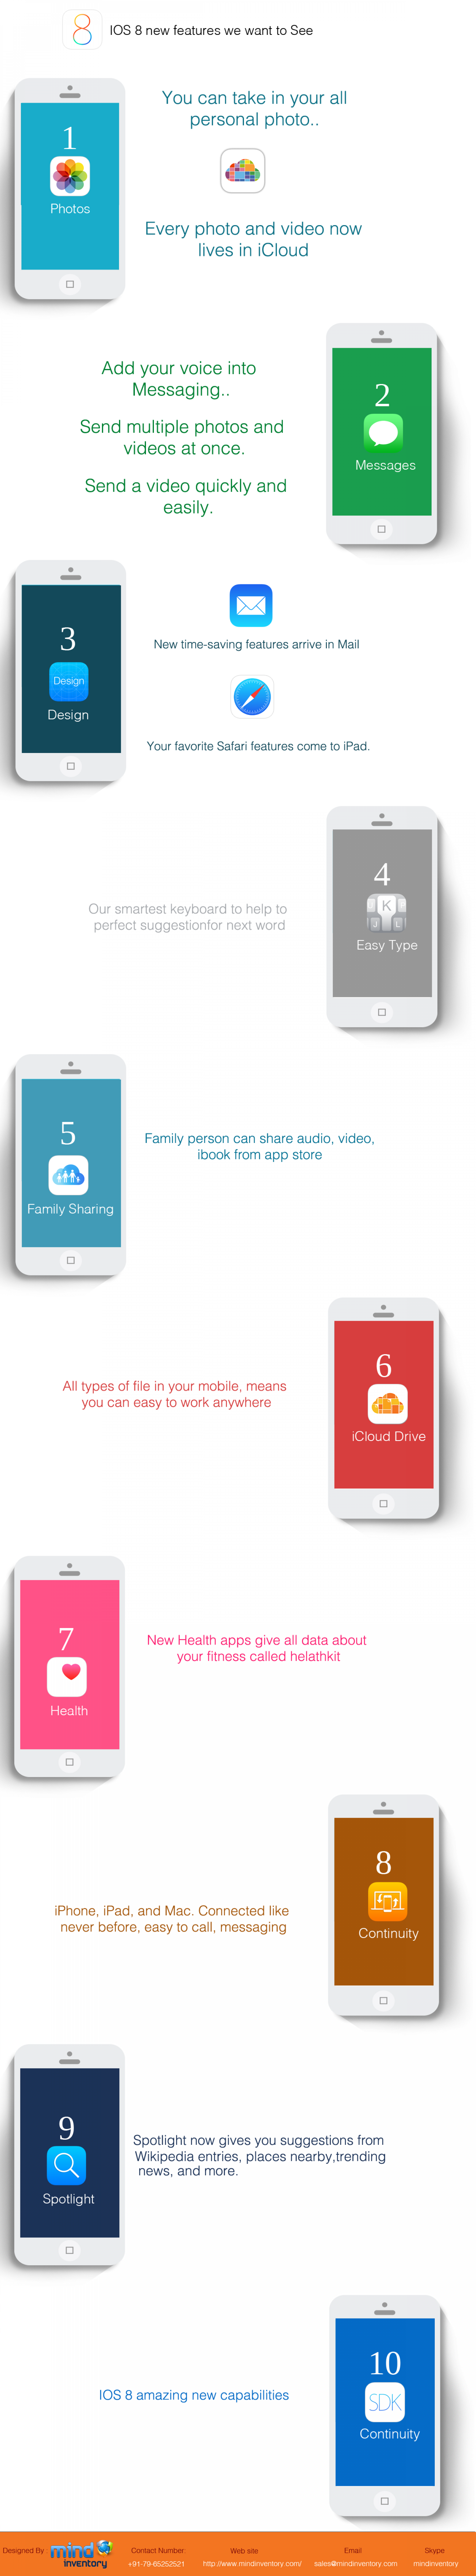 IOS 8 New Features Infographic